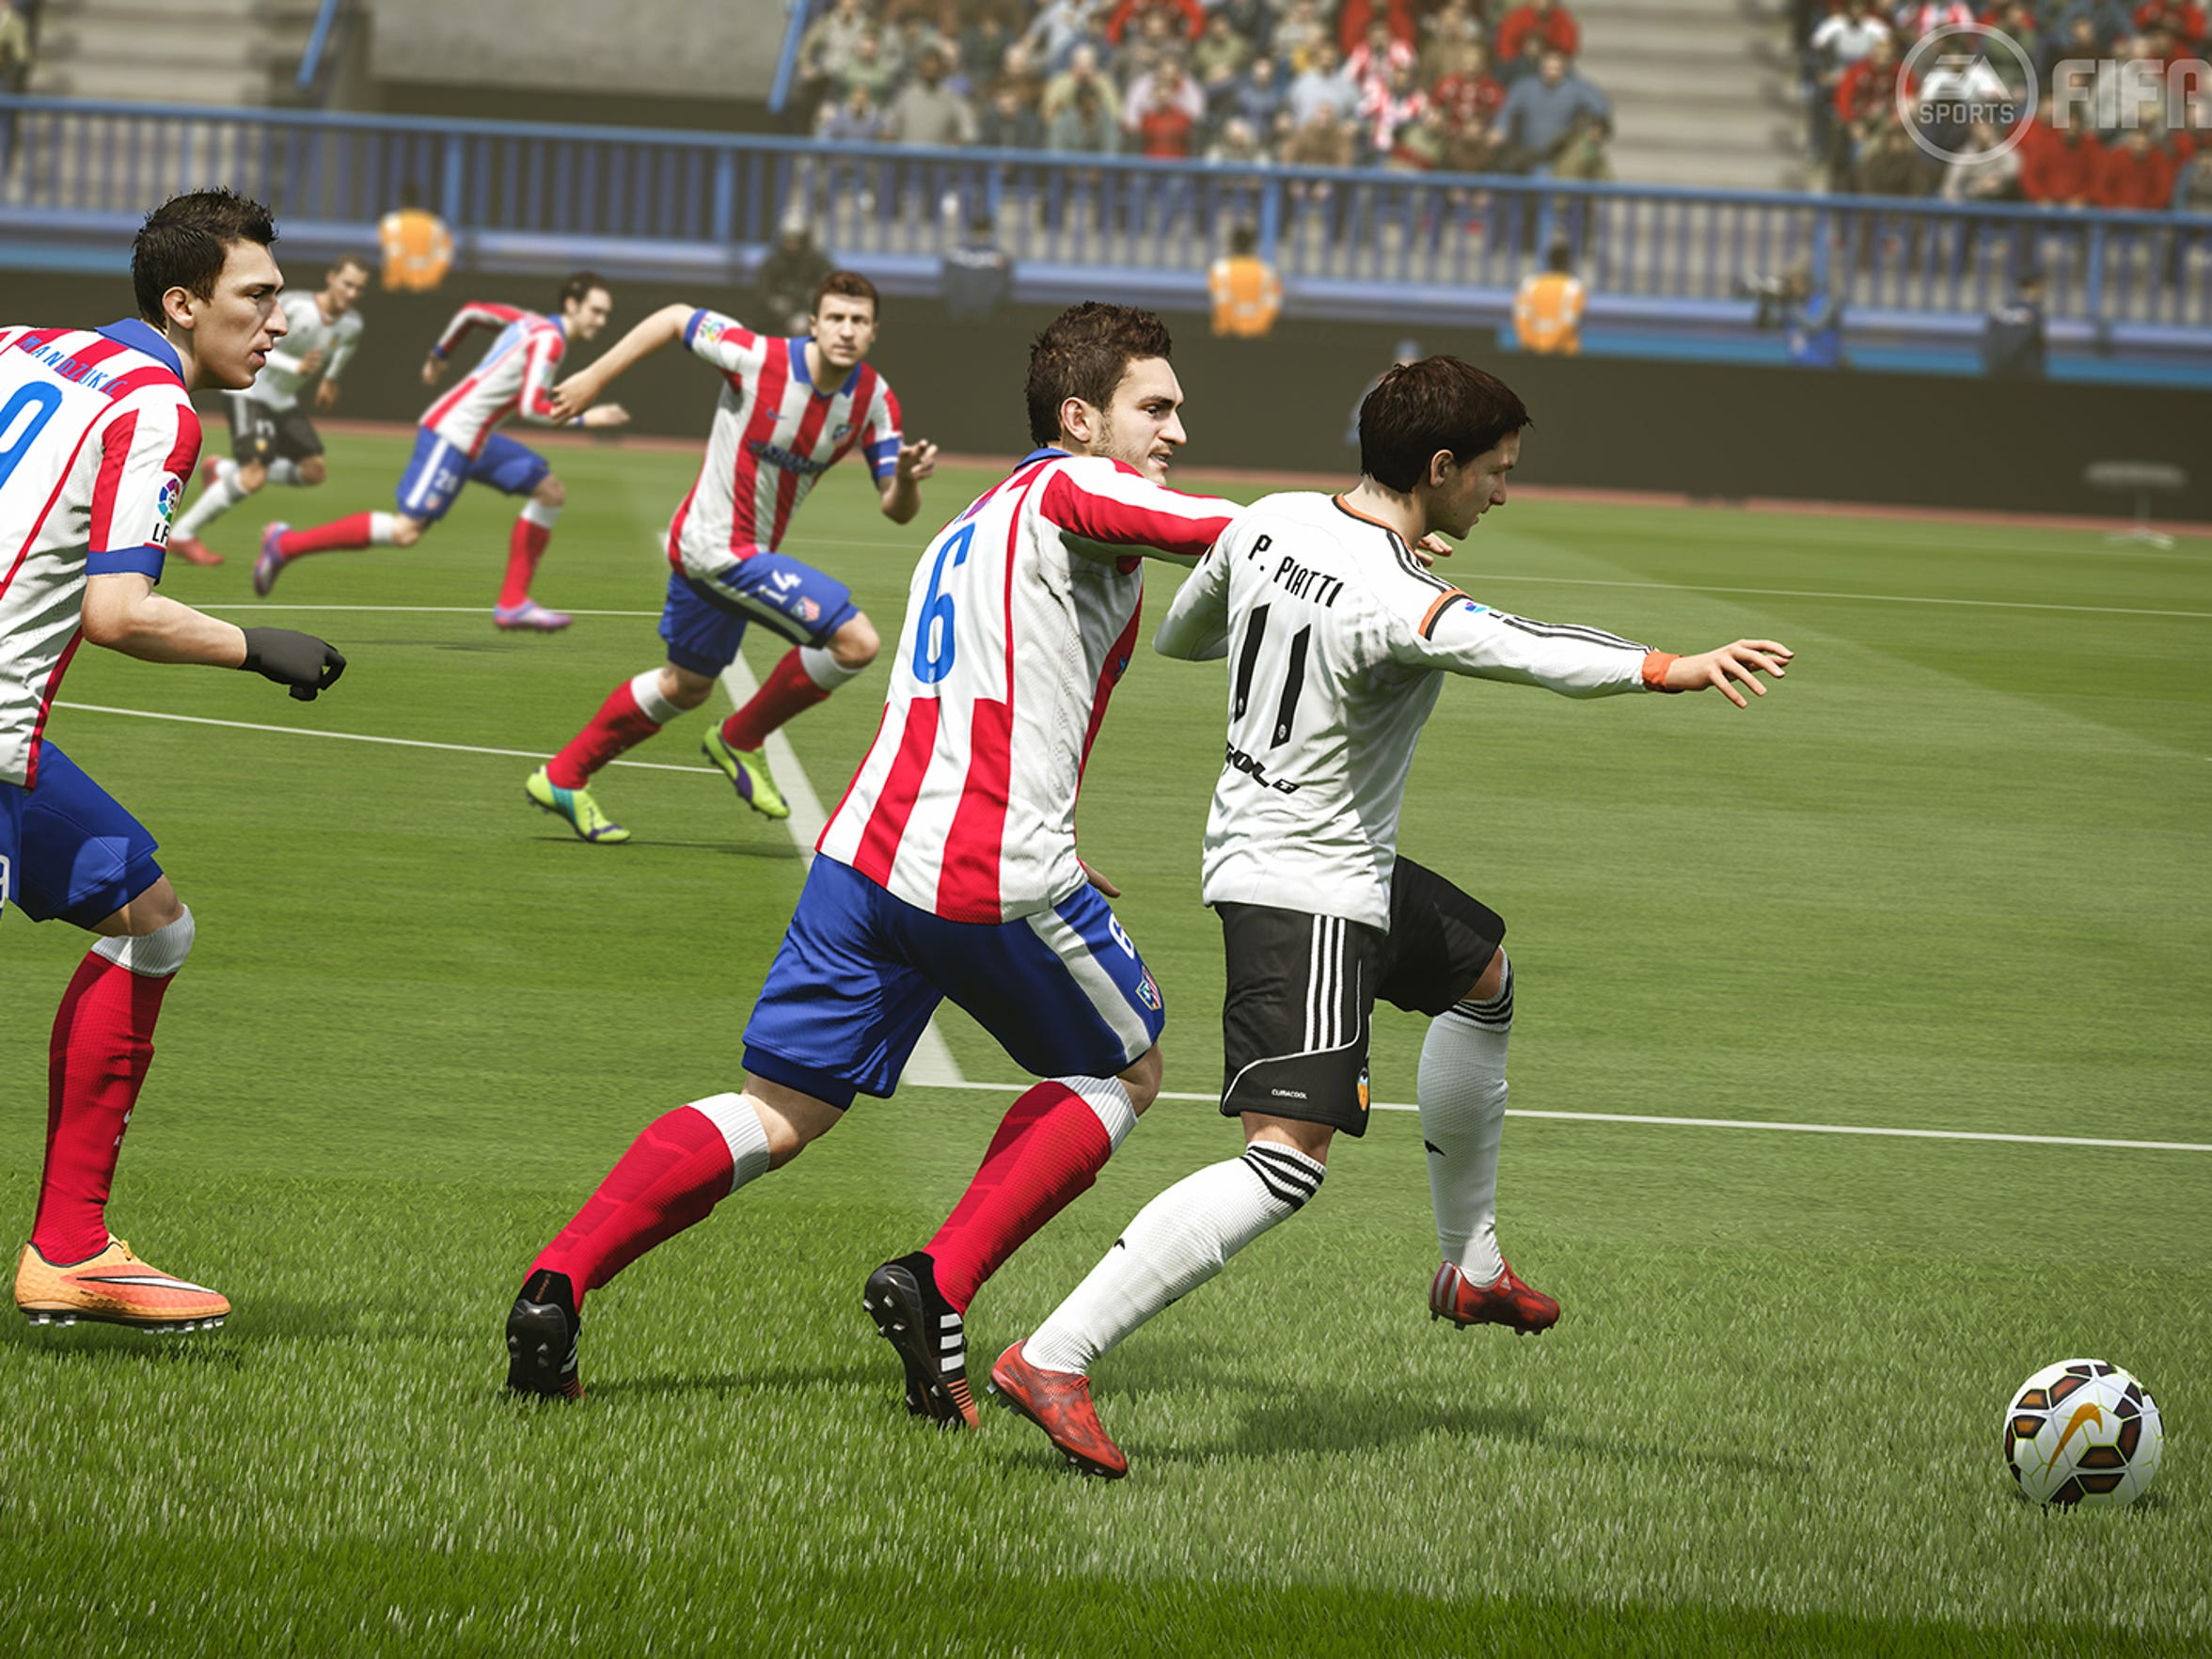 FIFA 16 features improved defense on the pitch compared to last year's version.